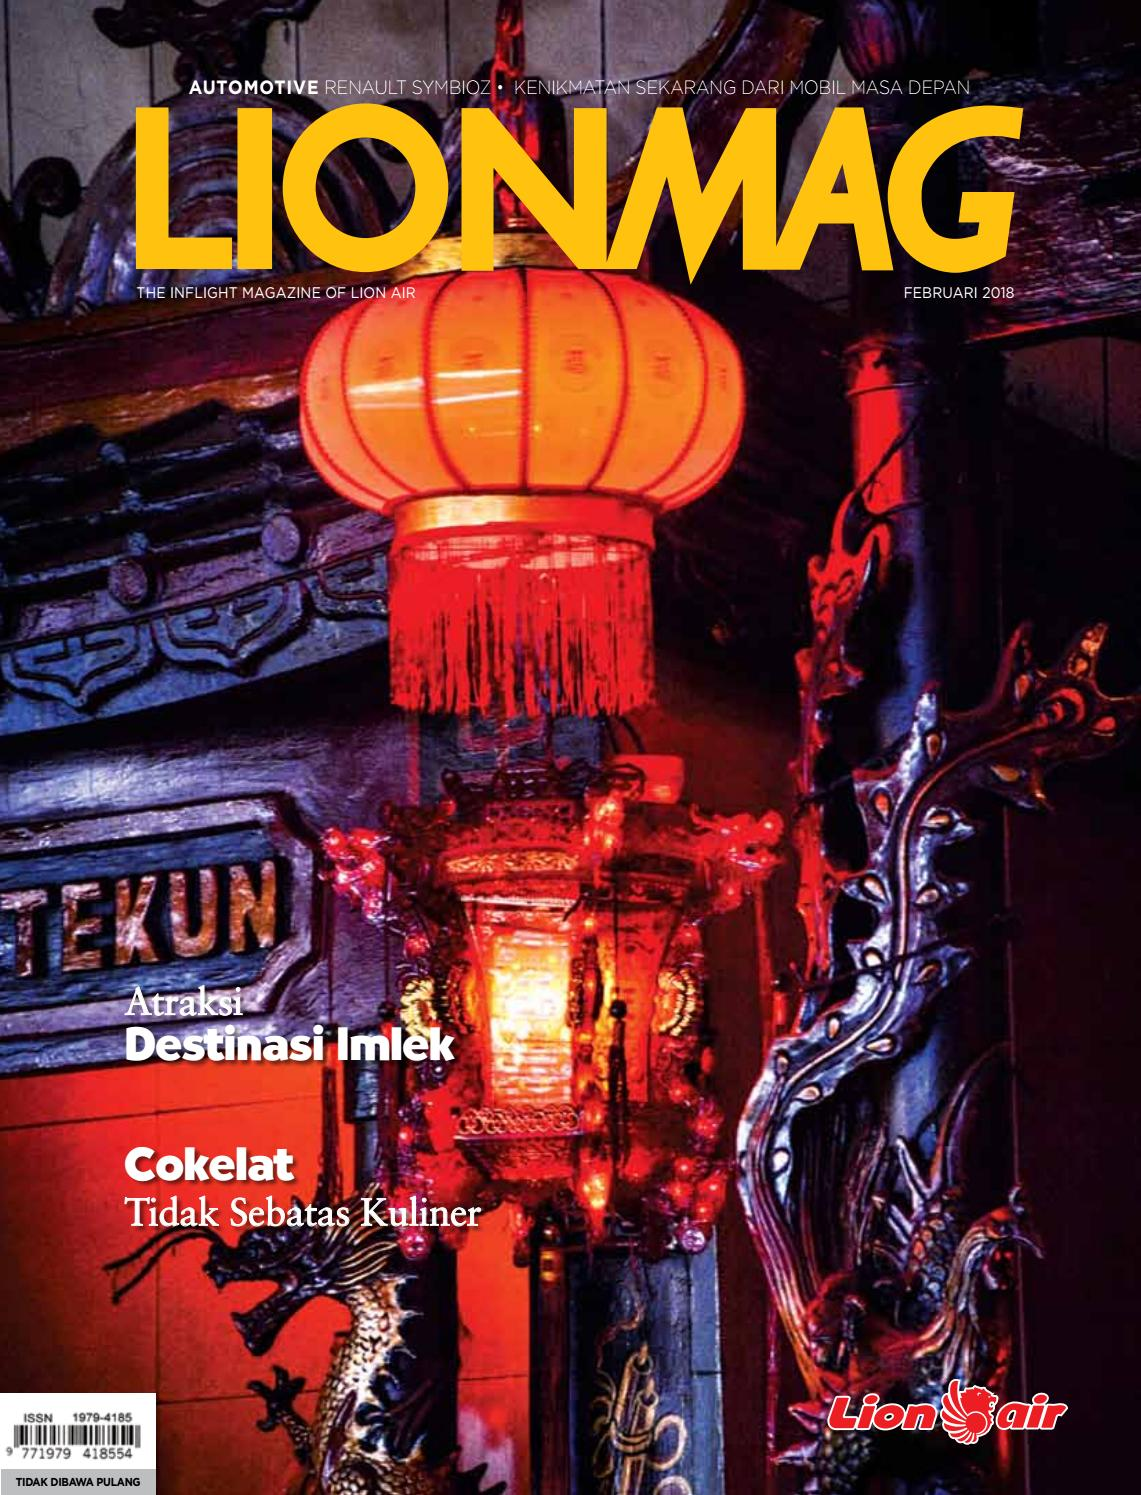 LIONMAG FEBRUARI 2018 by Bentang Media Nusantara - issuu 5e7981cd55